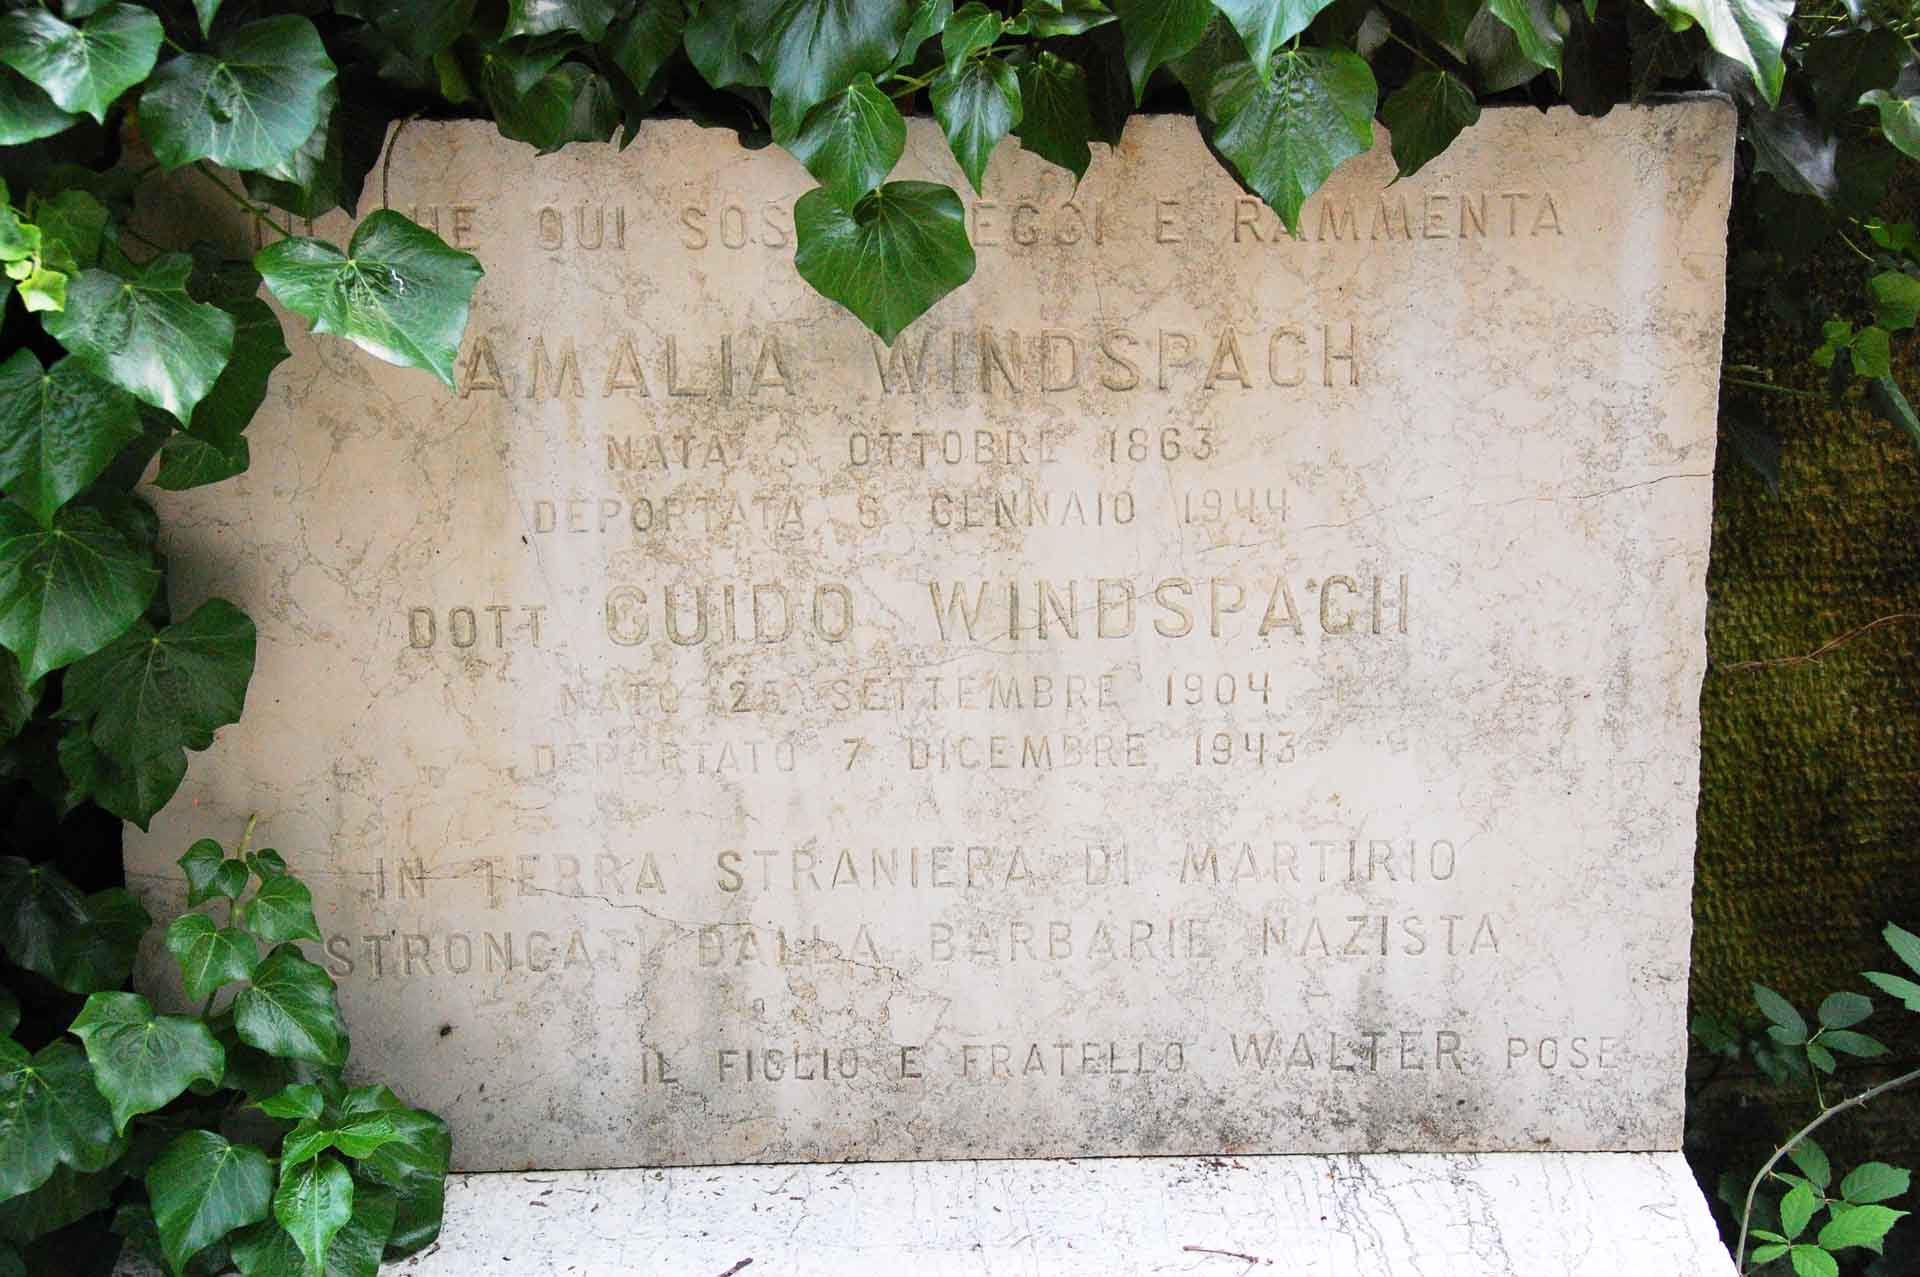 Amalia Windspach und Dr. Guido Windspach, Schoa-Opfer